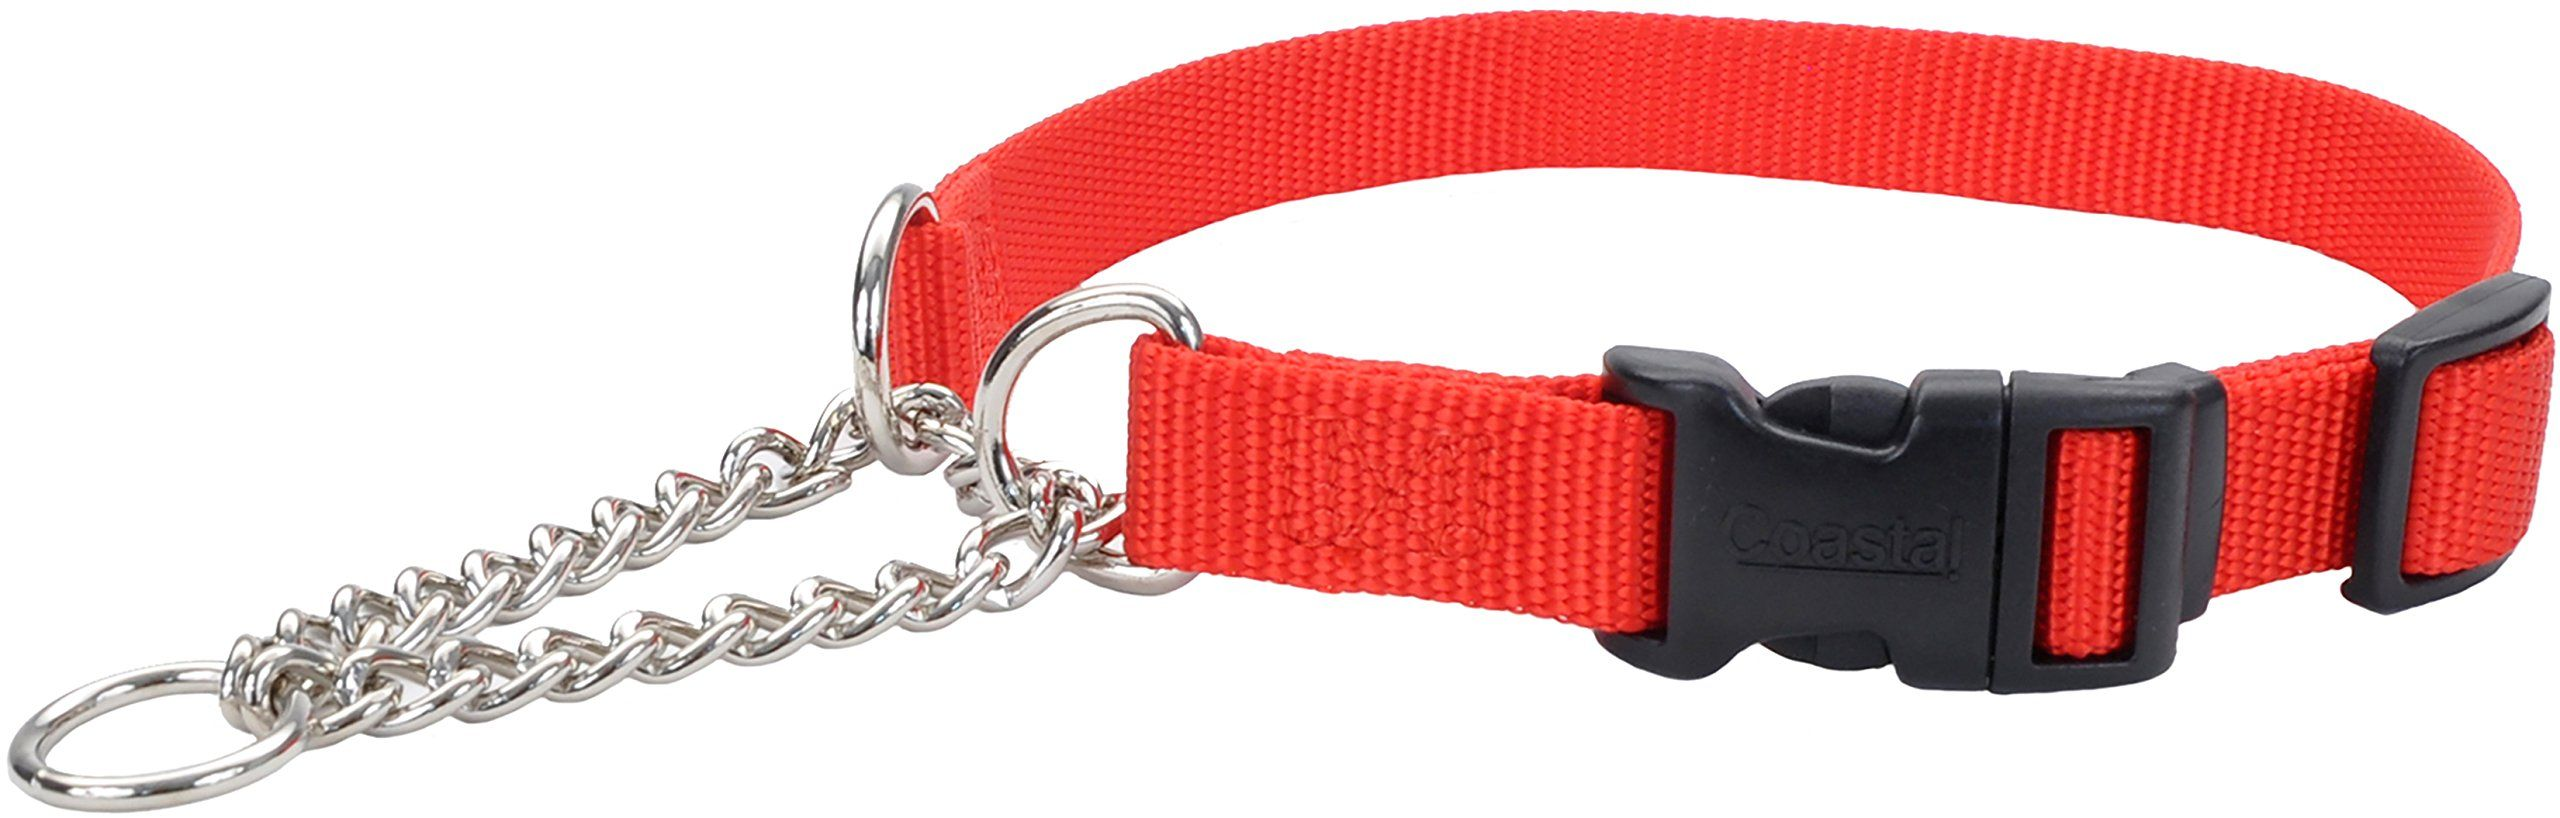 Coastal Pet Products Training Collar Learn More By Visiting